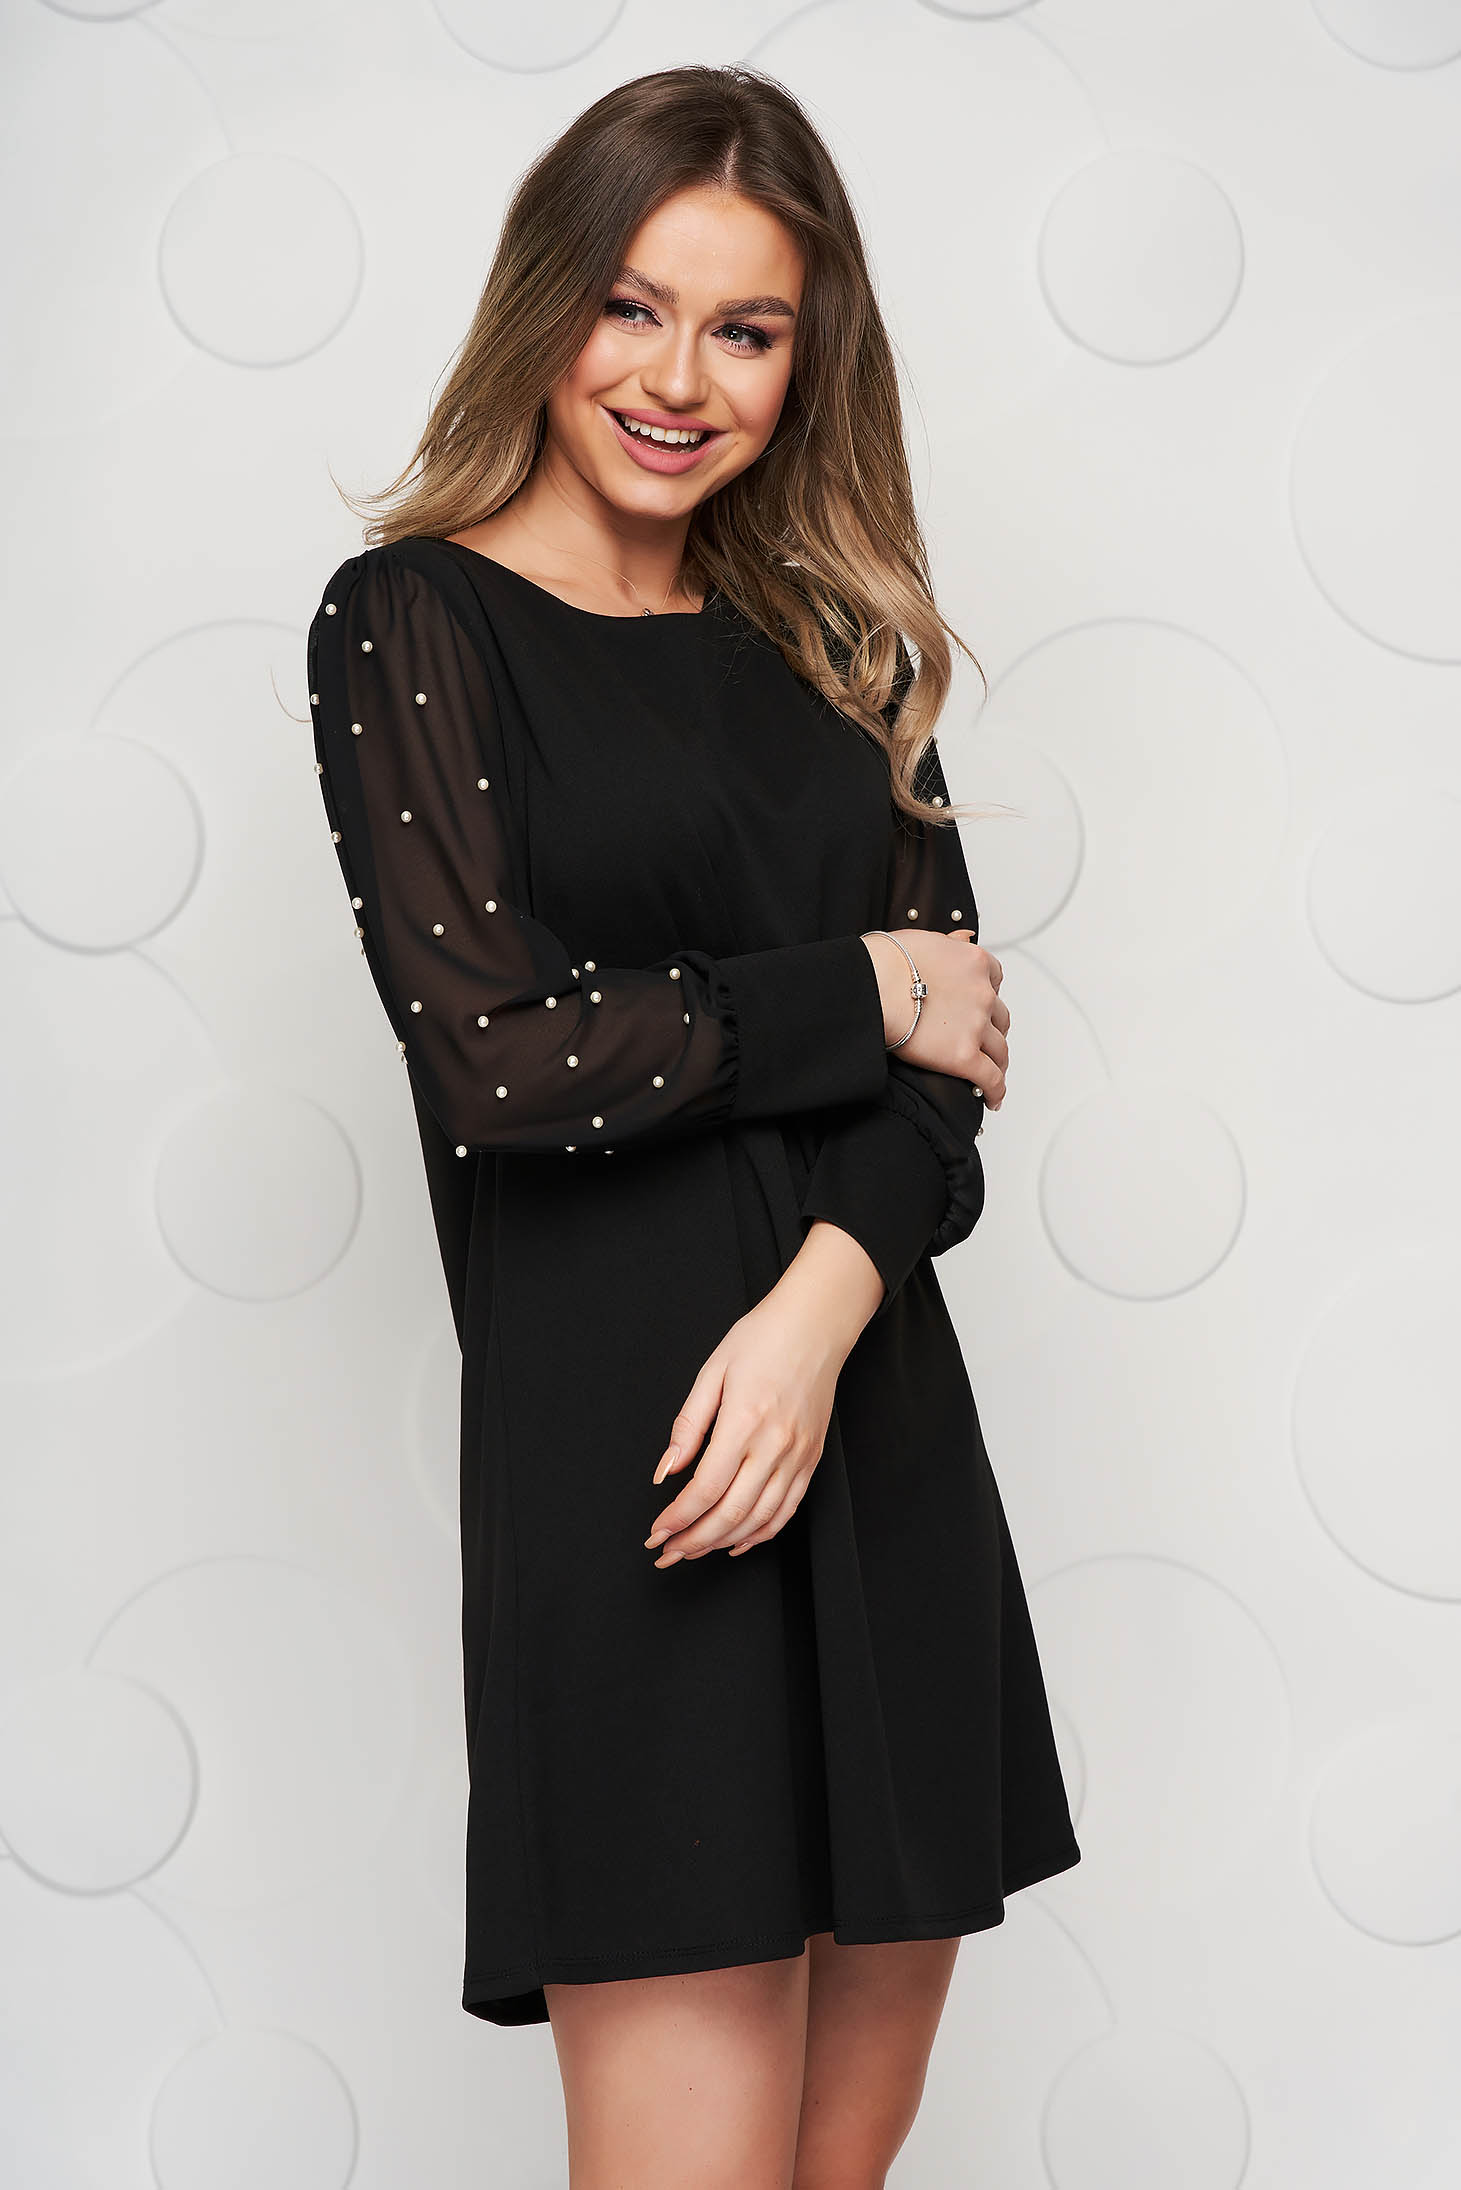 Black dress occasional short cut flared with veil sleeves with pearls